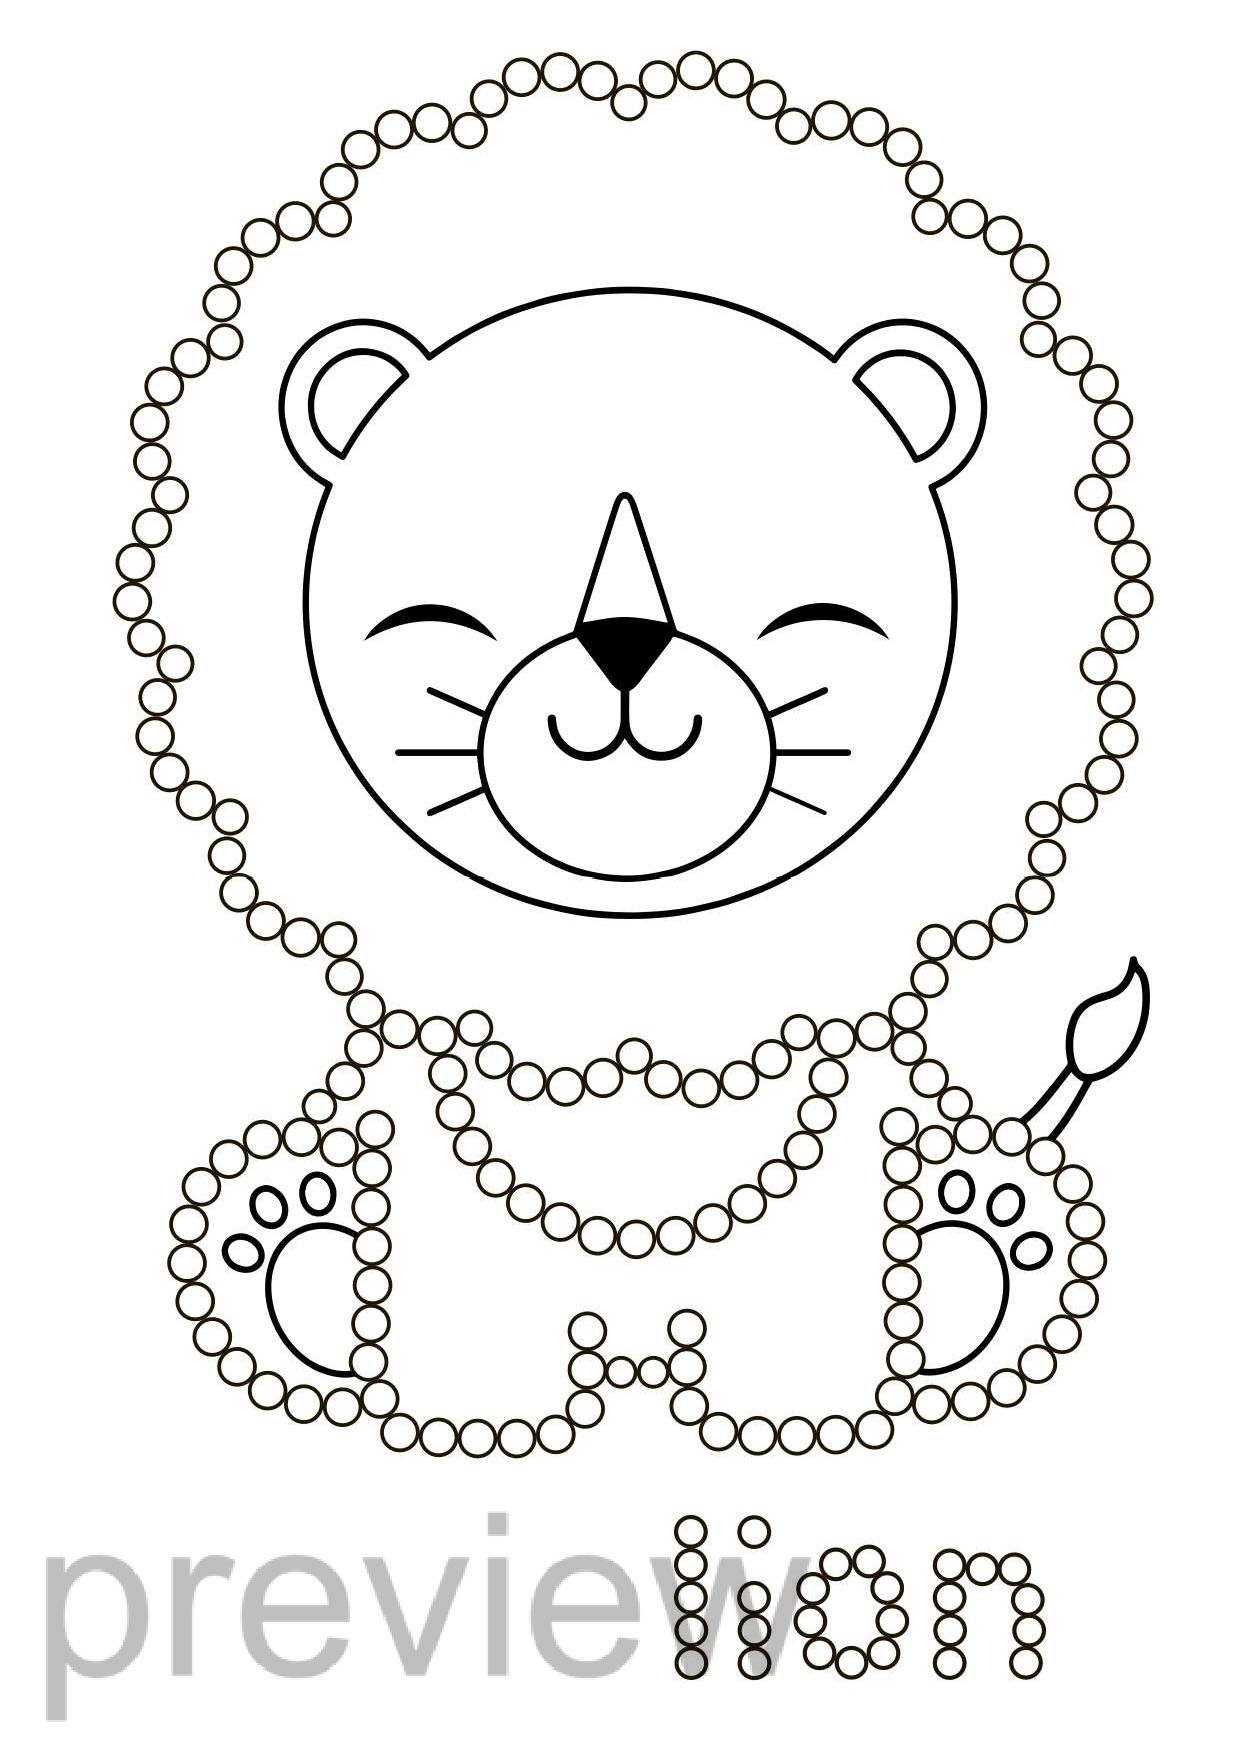 Q Tip Fine Motor Animals Dot Painting Worksheets Preschool Colors Dot Painting Toddler Drawing [ 1755 x 1240 Pixel ]